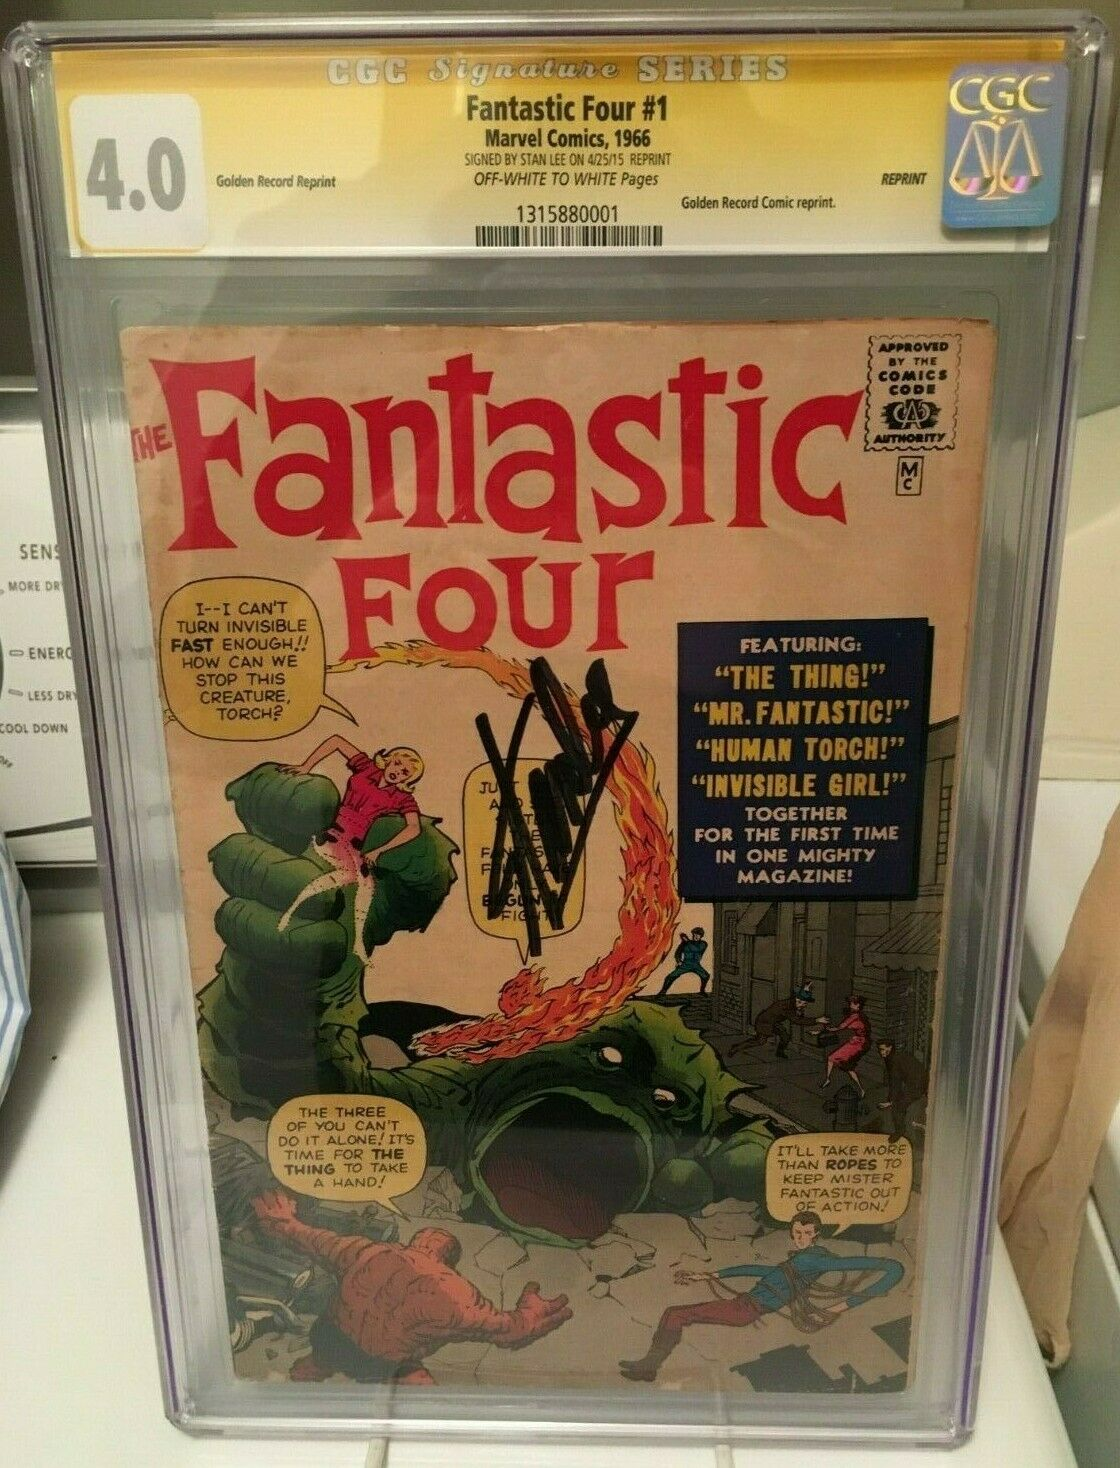 FANTASTIC FOUR #1 (1966 REPRINT) ? SIGNED STAN LEE ? CGC 4.0 Golden Record GRR